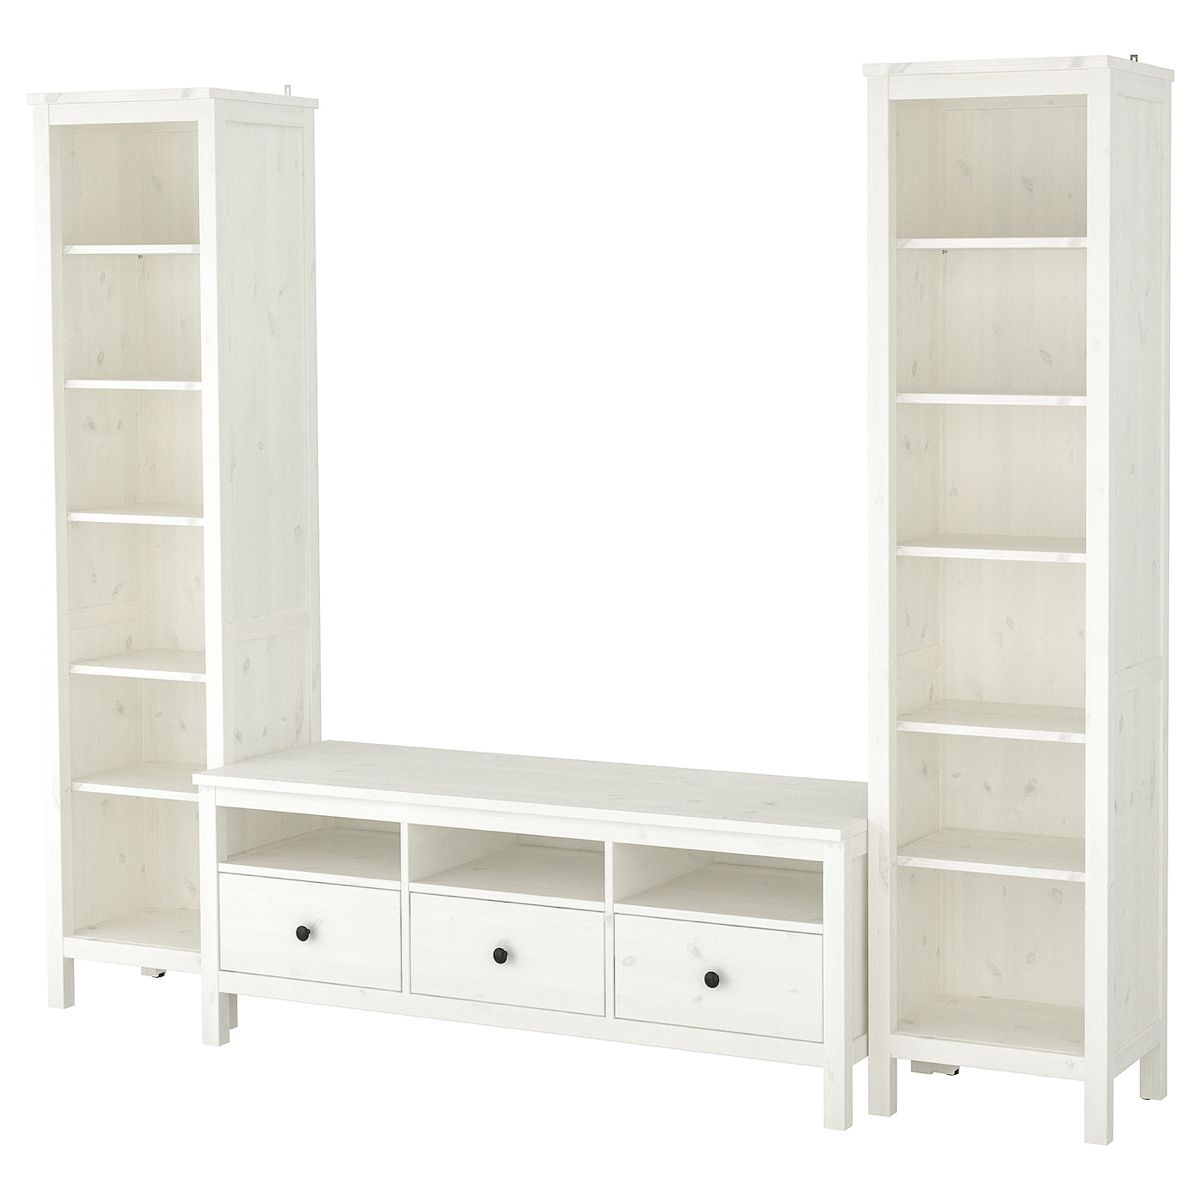 Mensole Per Tv Ikea.Hemnes Tv Storage Combination White Stain Arredamento Casa